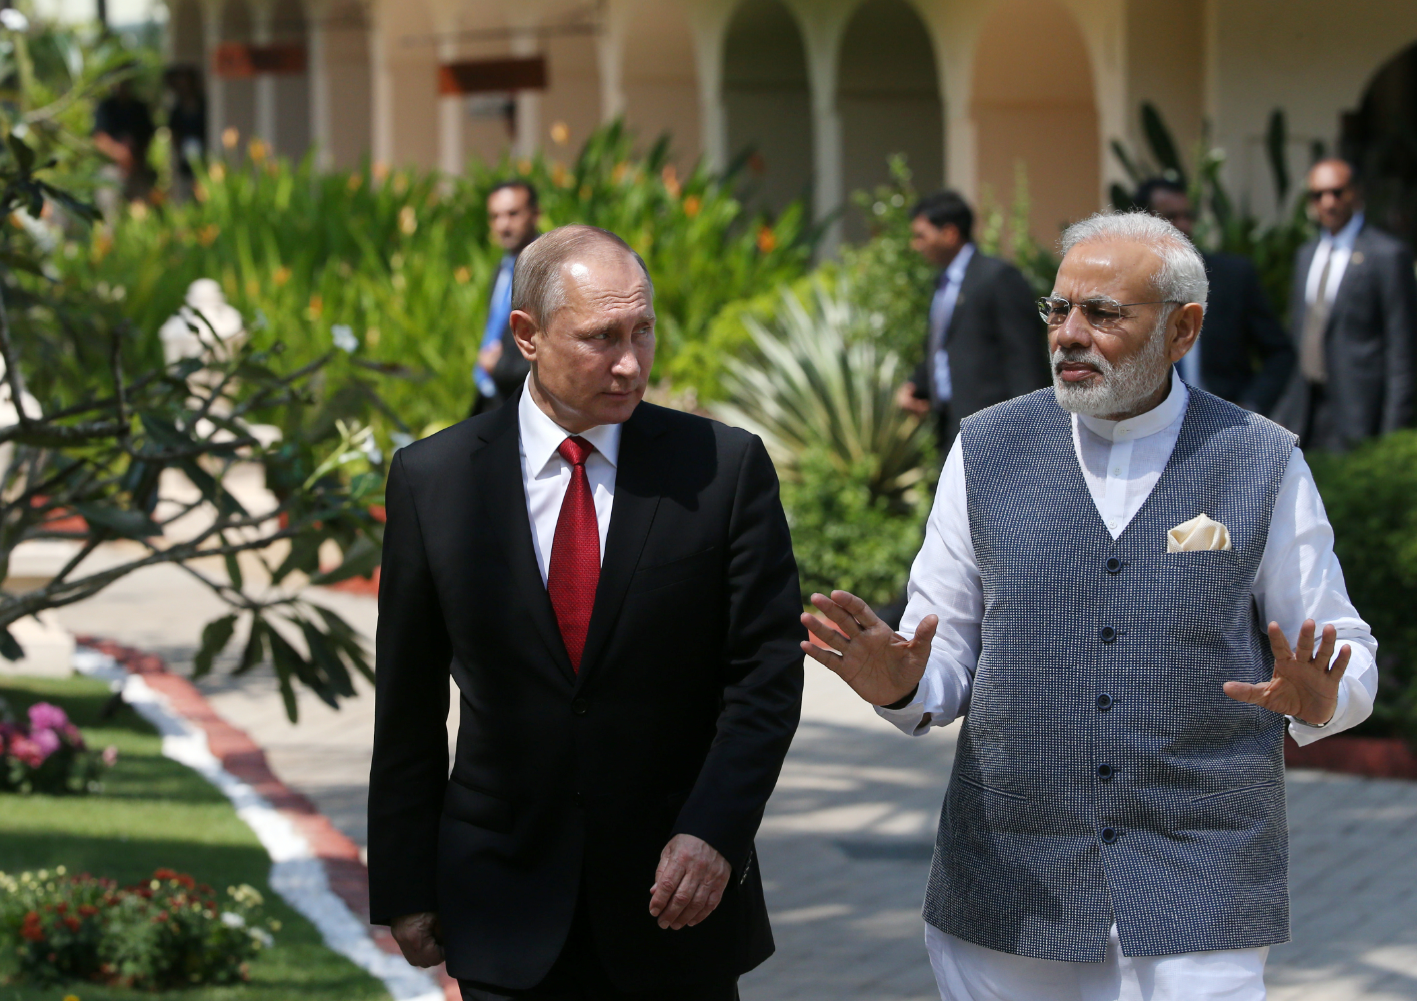 Russian President Vladimir Putin and Indian Prime Minister Narendra Modi, right, during their meeting at Taj Exotica Goa, India.